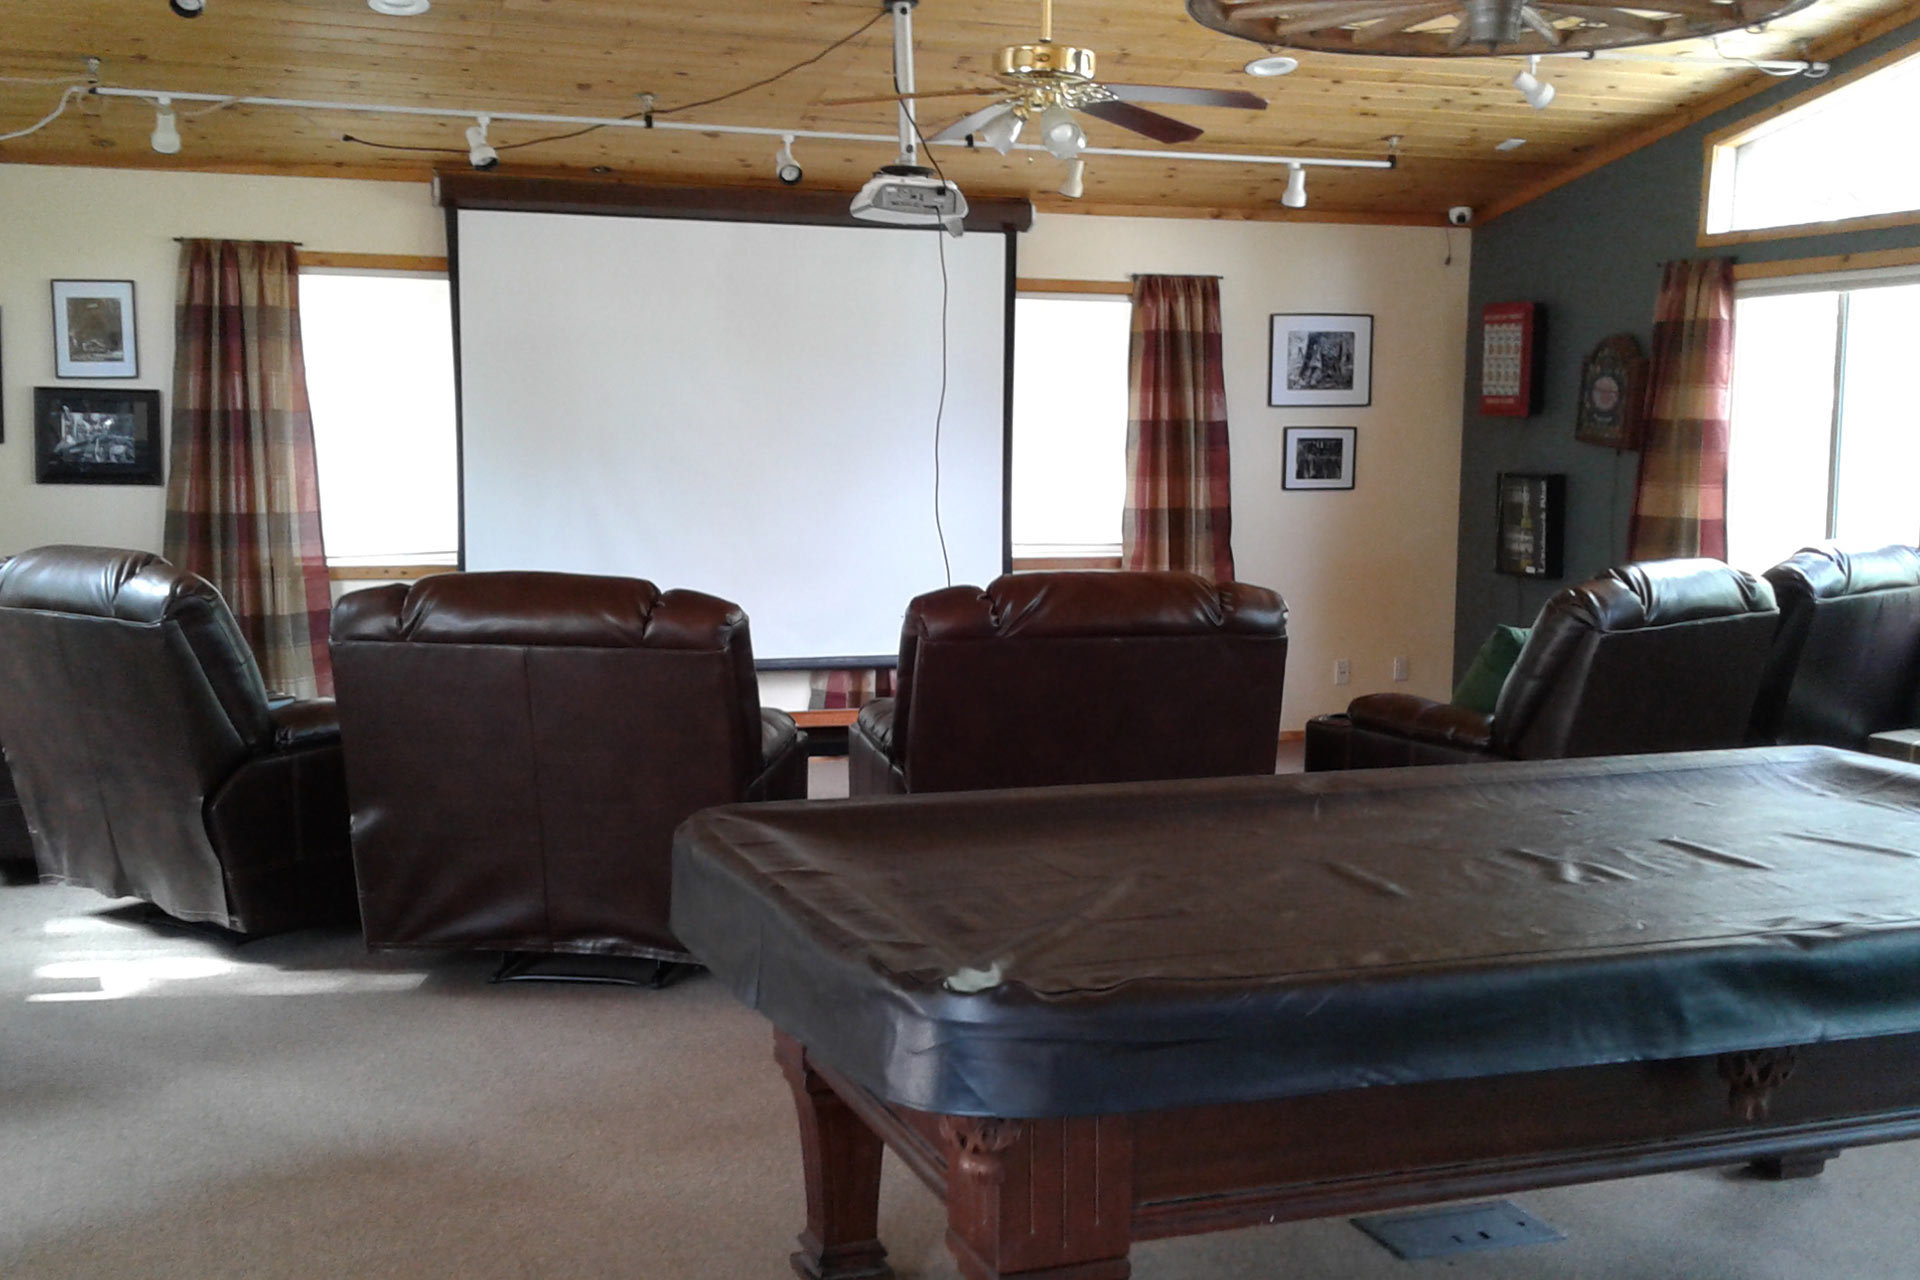 Pool table and Movie screen in the Knickerbocker Mansion Recreation room